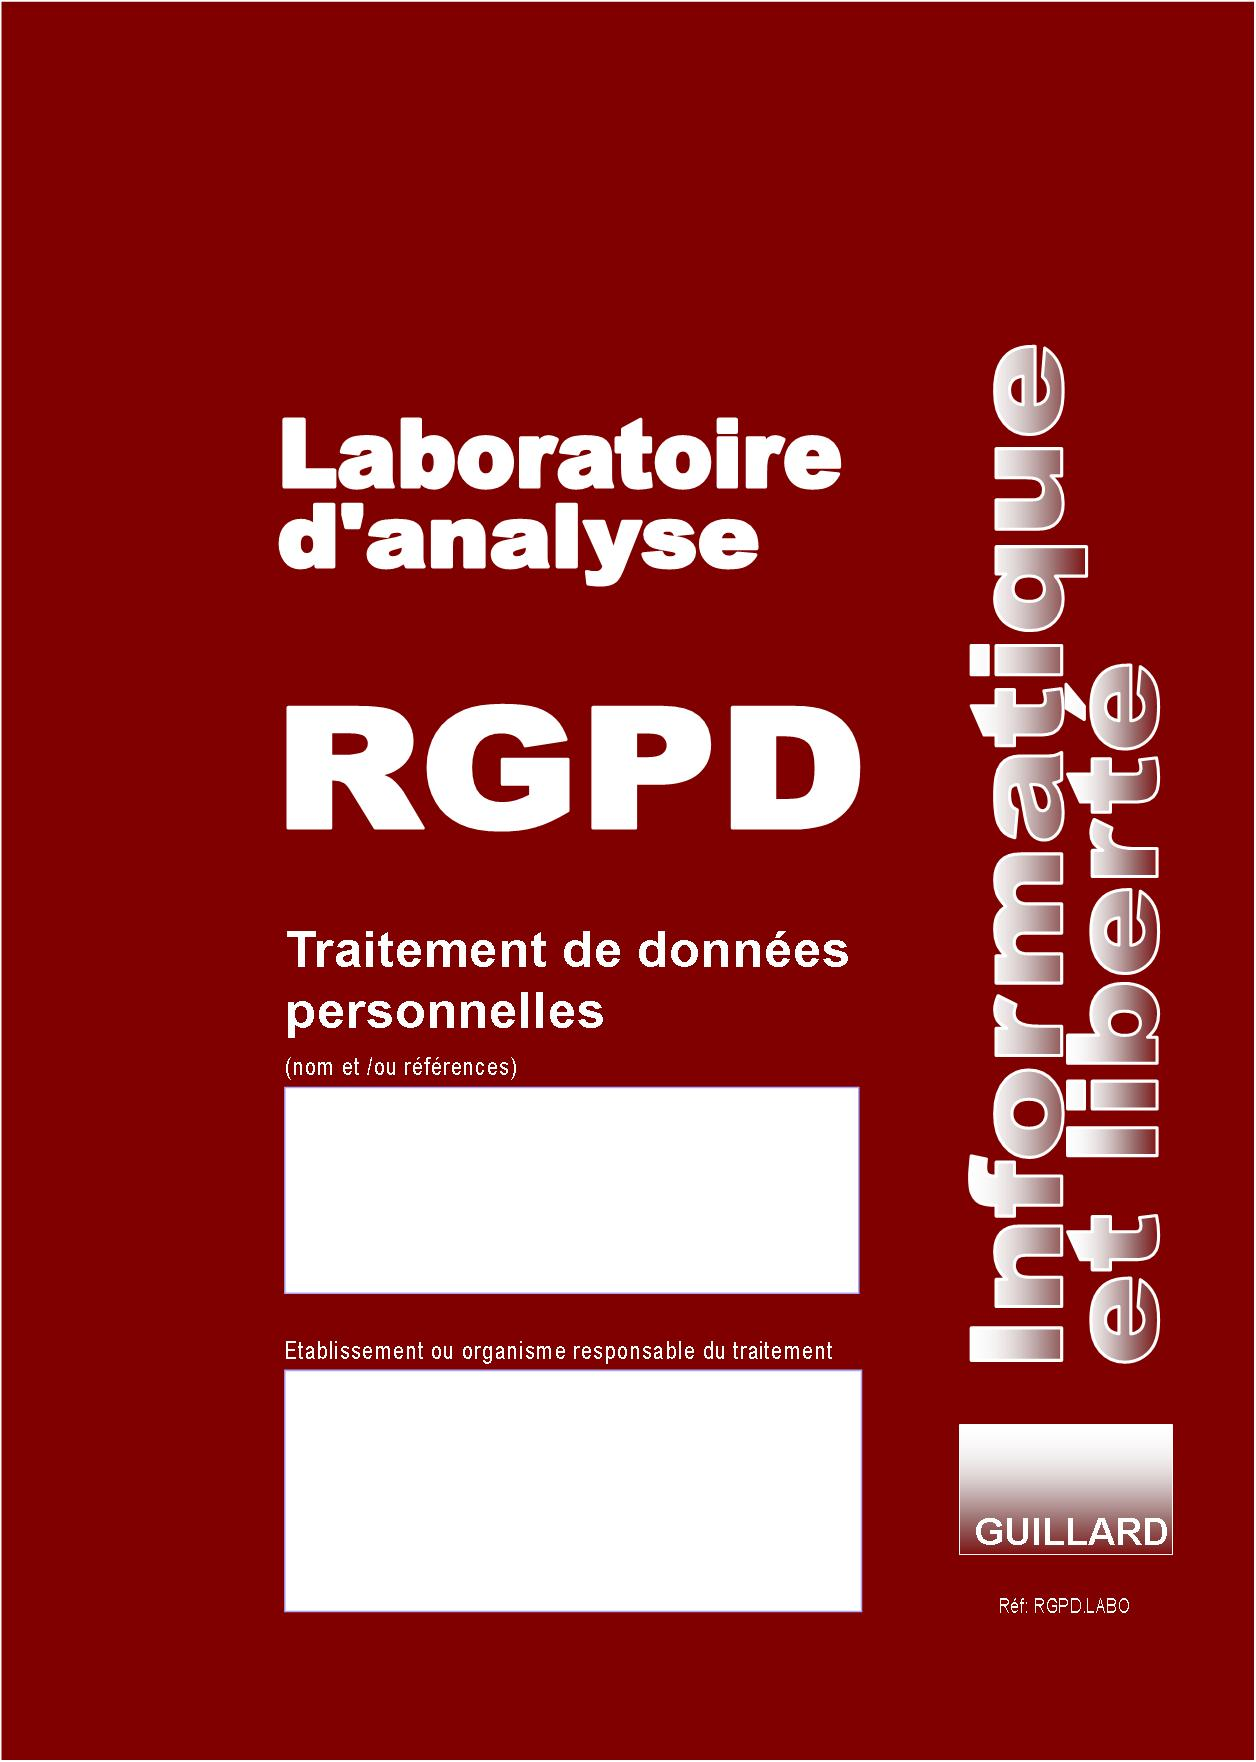 Registre RGPD LABORATOIRE D'ANALYSES de TRAITEMENT DES DONNEES PERSONNELLES - RGPD.LABO